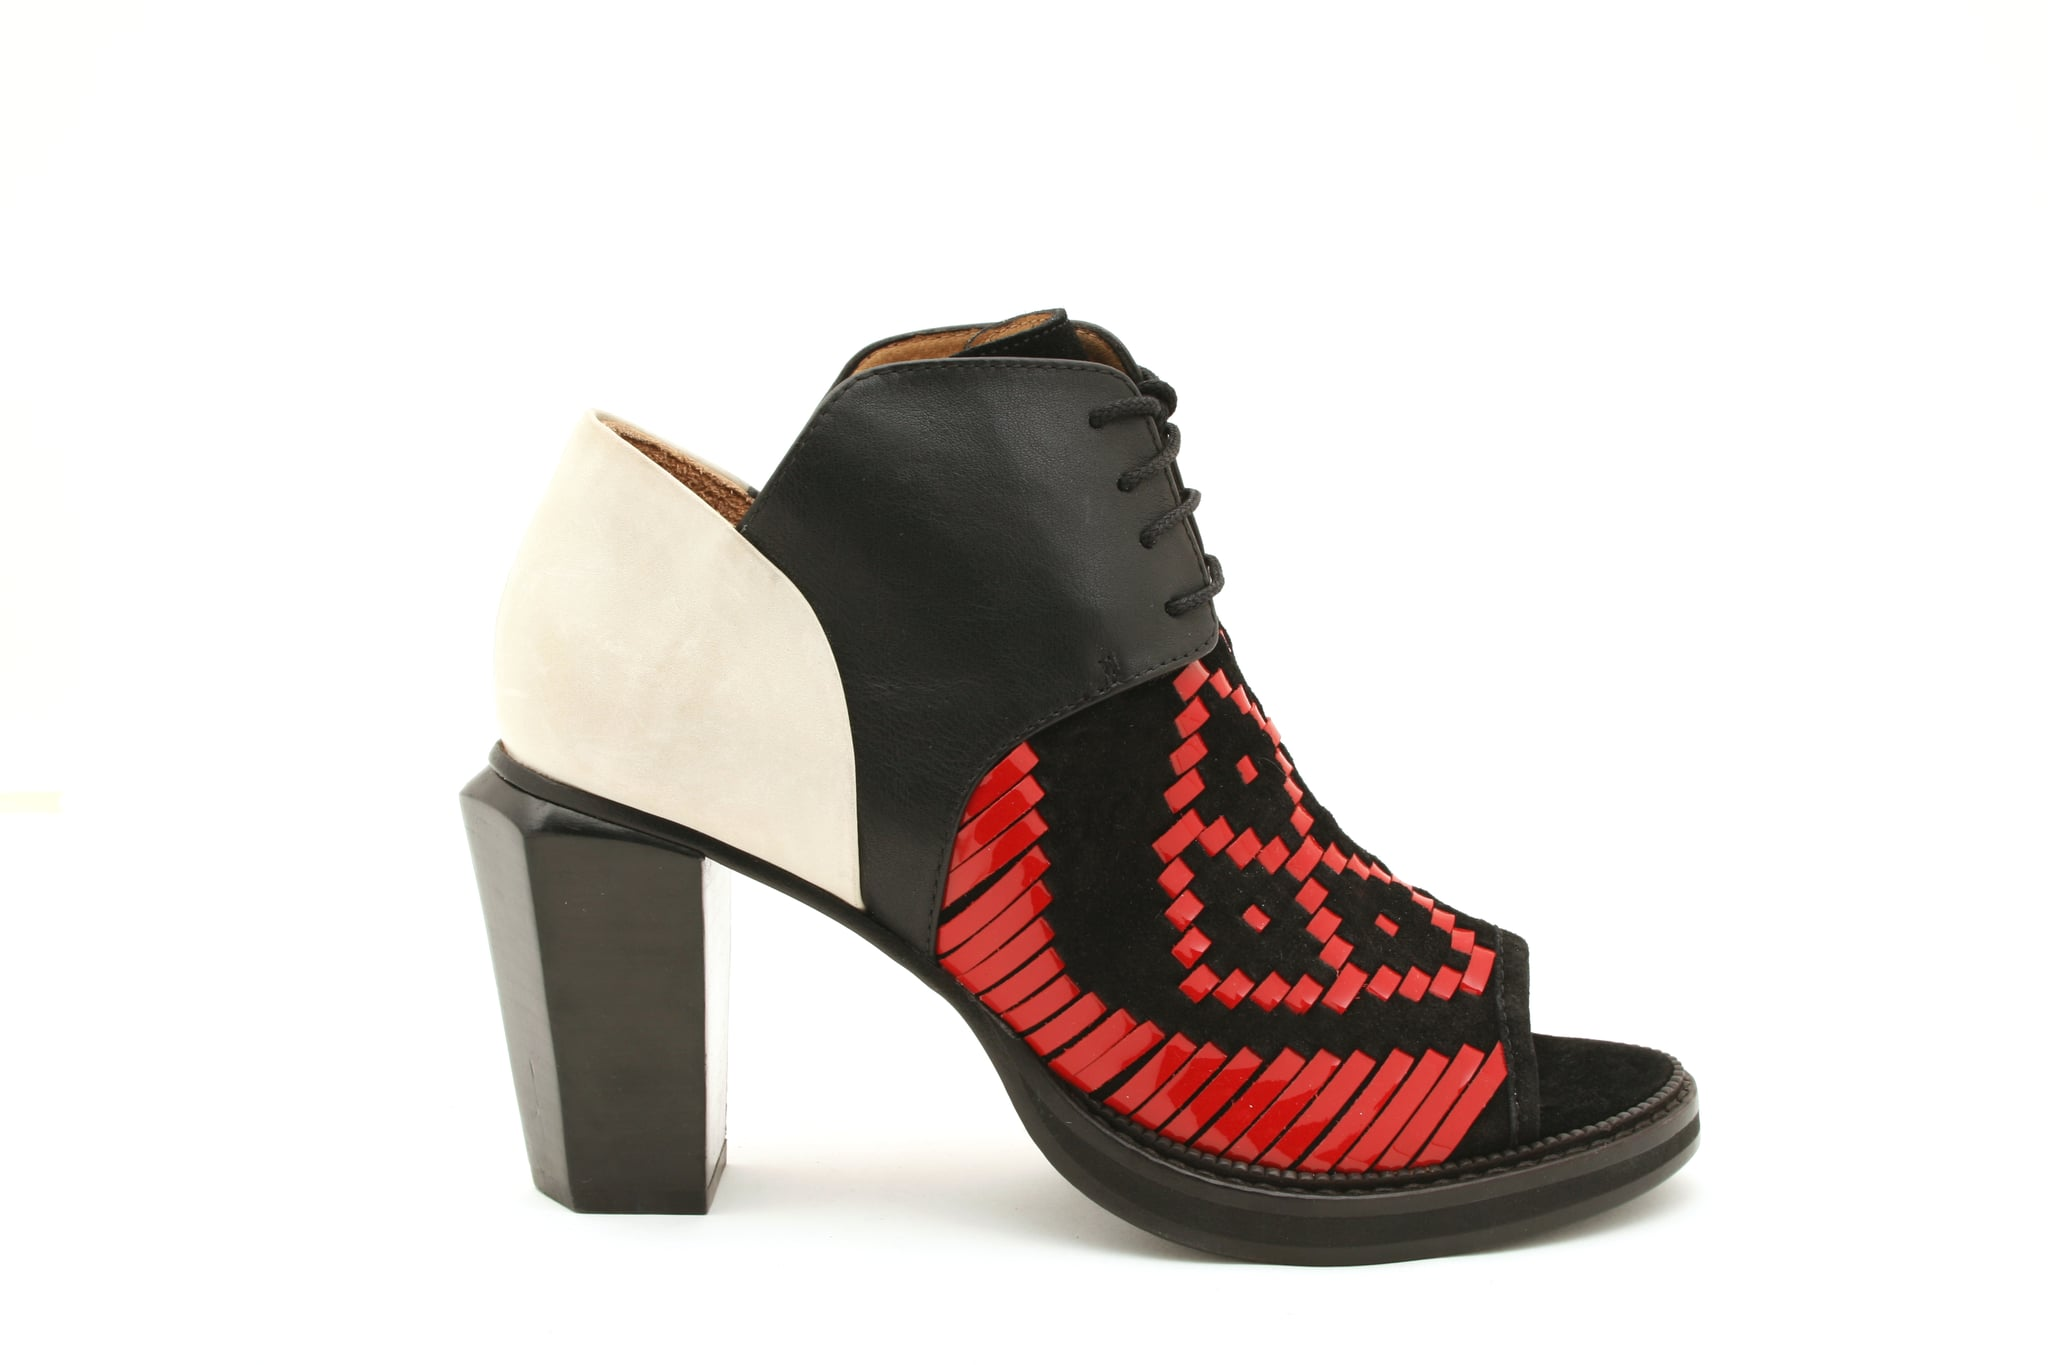 The Thakoon Addition Charlotte in black and red. Photo courtesy of Thakoon Addition